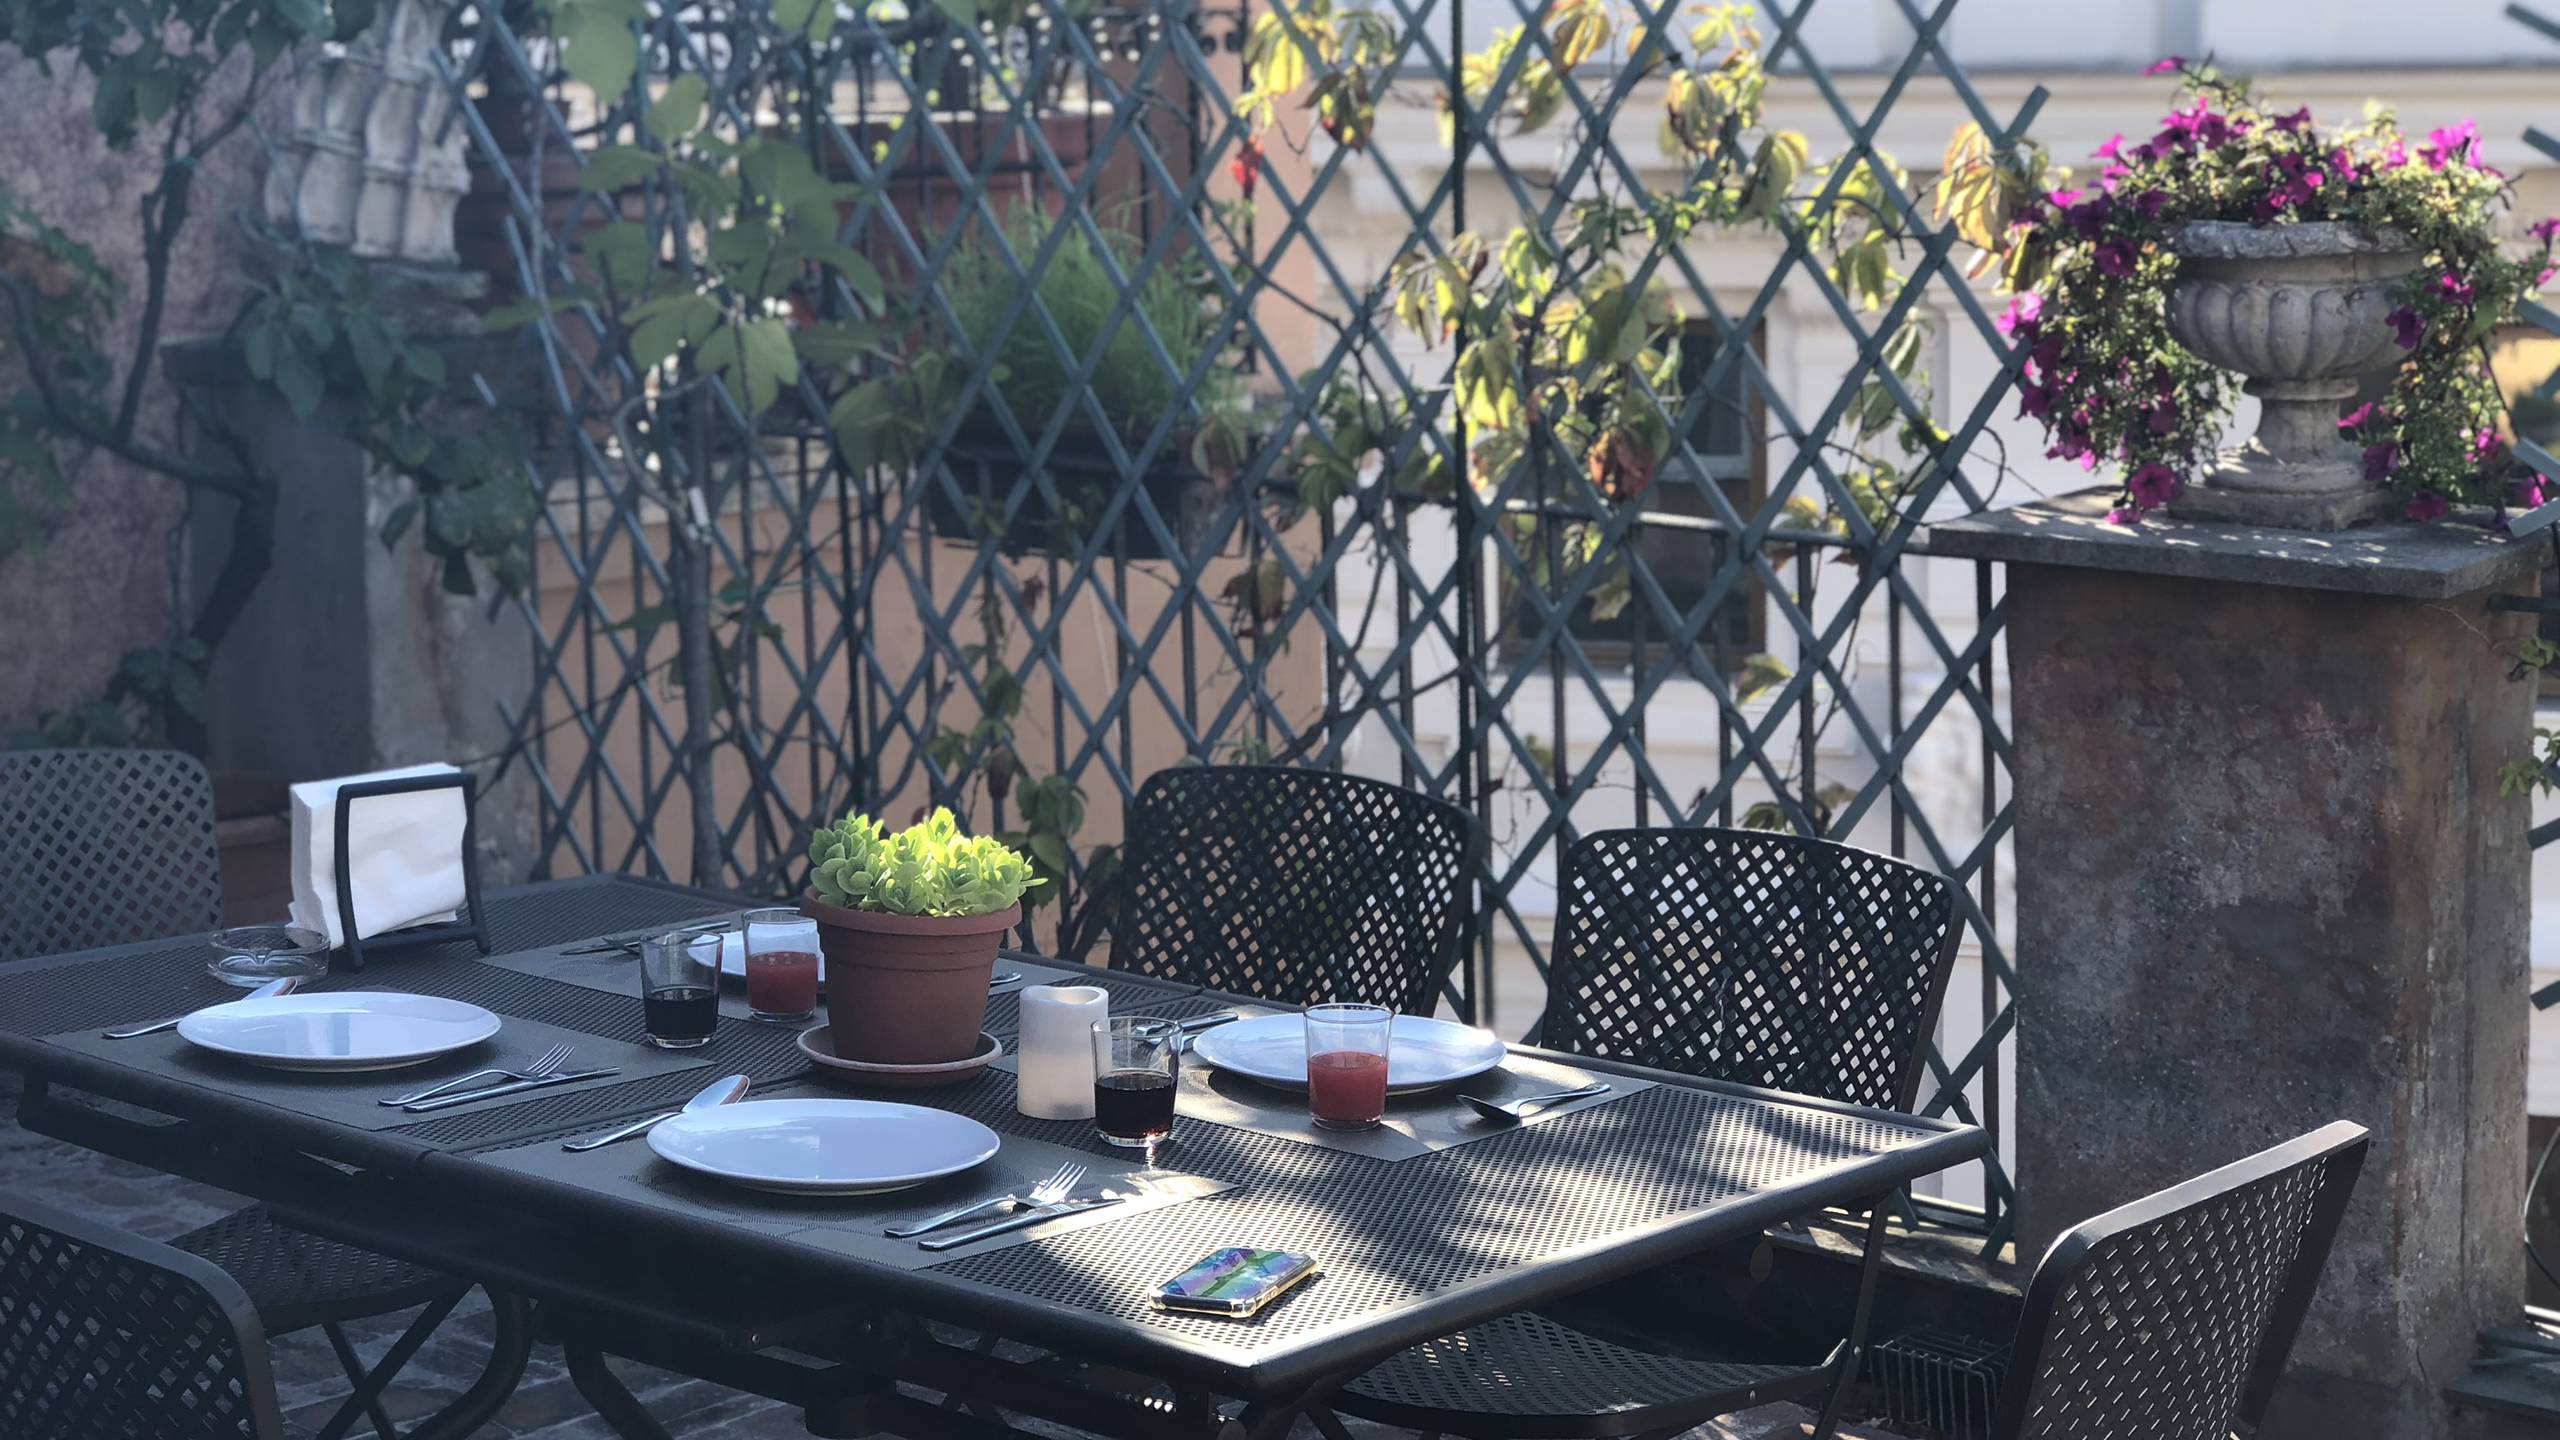 gh-collection-rome-gh-apartments-terrace-23-07-18-18-02-59